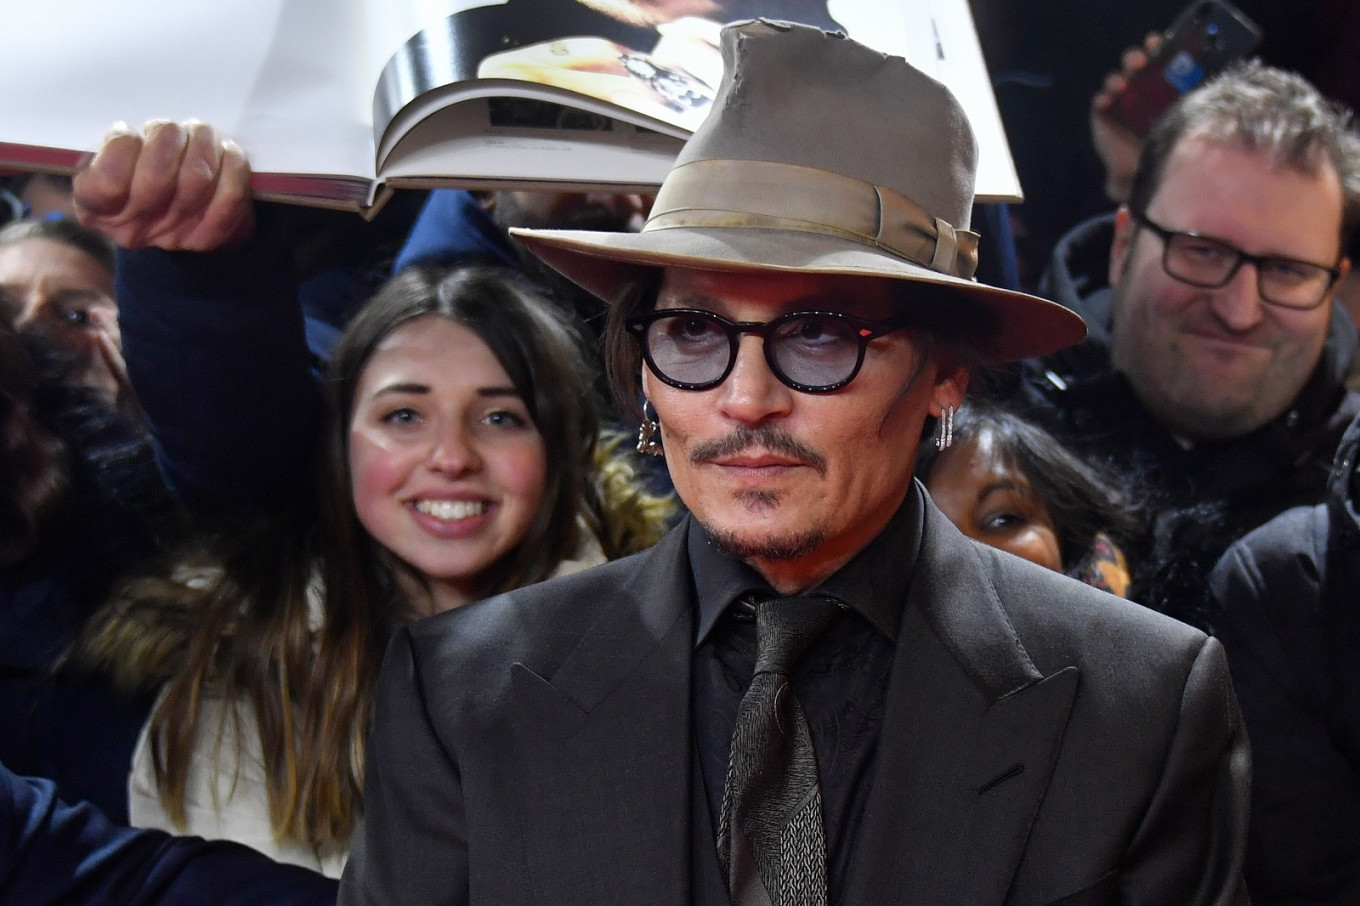 Johnny Depp: Loveable loner tarnished by lurid claims